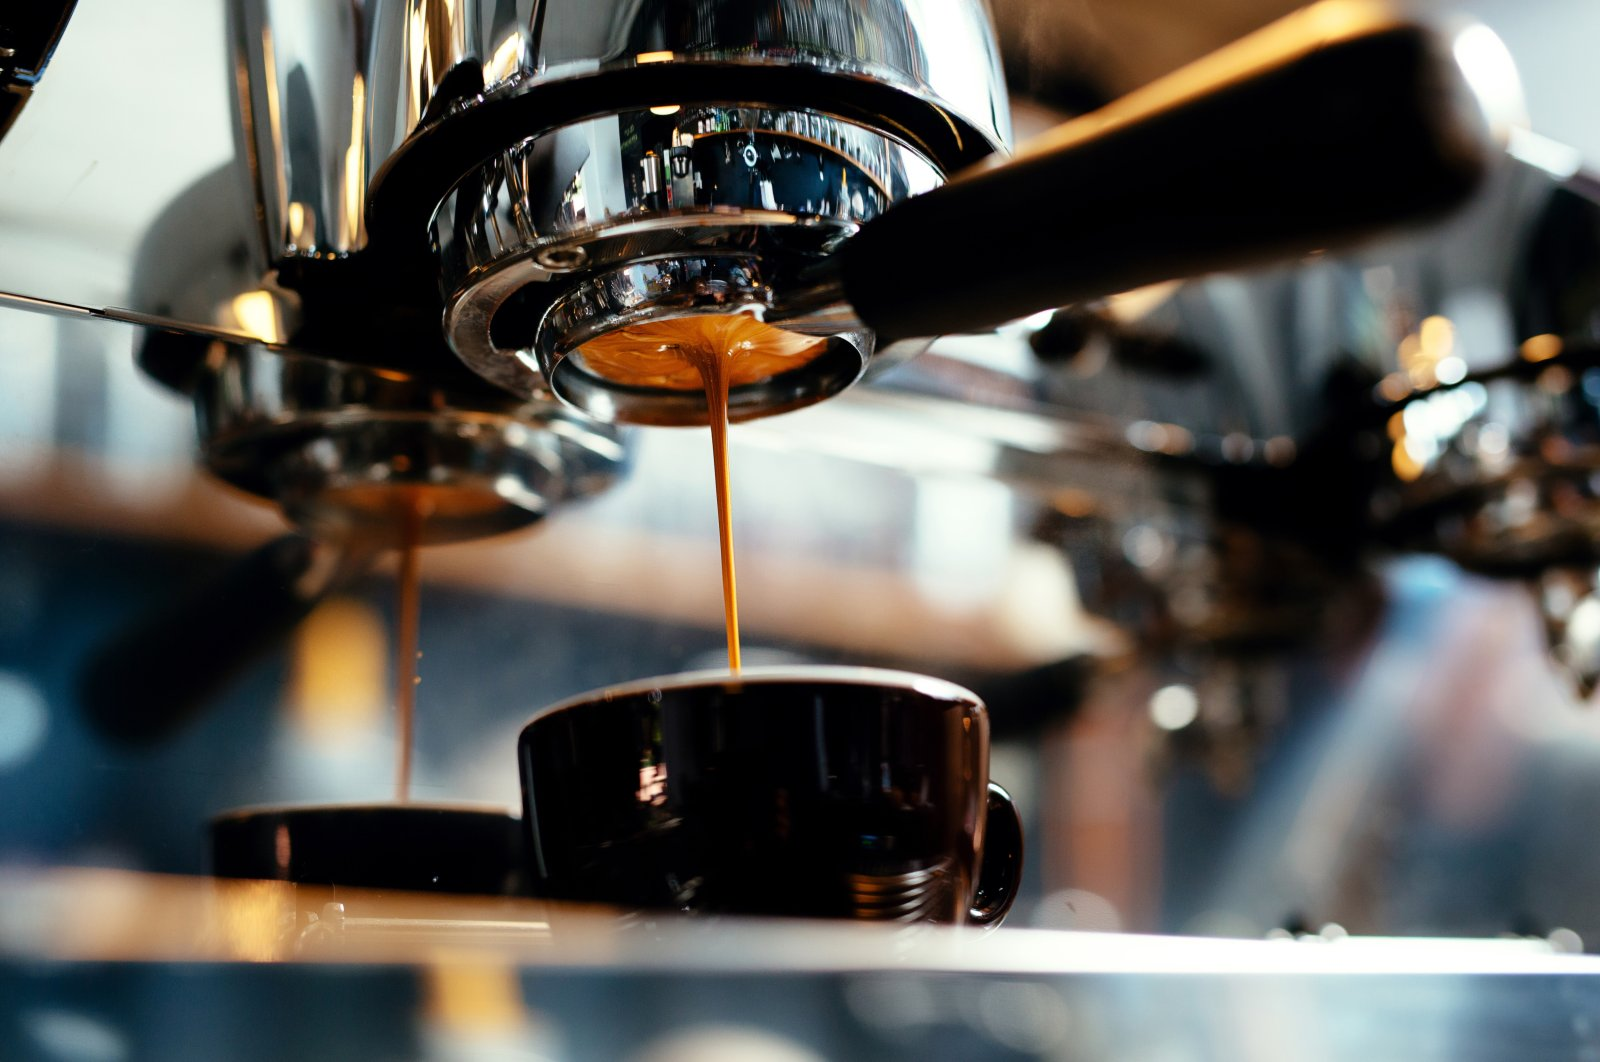 Environmental benefits of lab-grown coffee include reduced use of pesticides and fertilizer. (Shutterstock Photo)